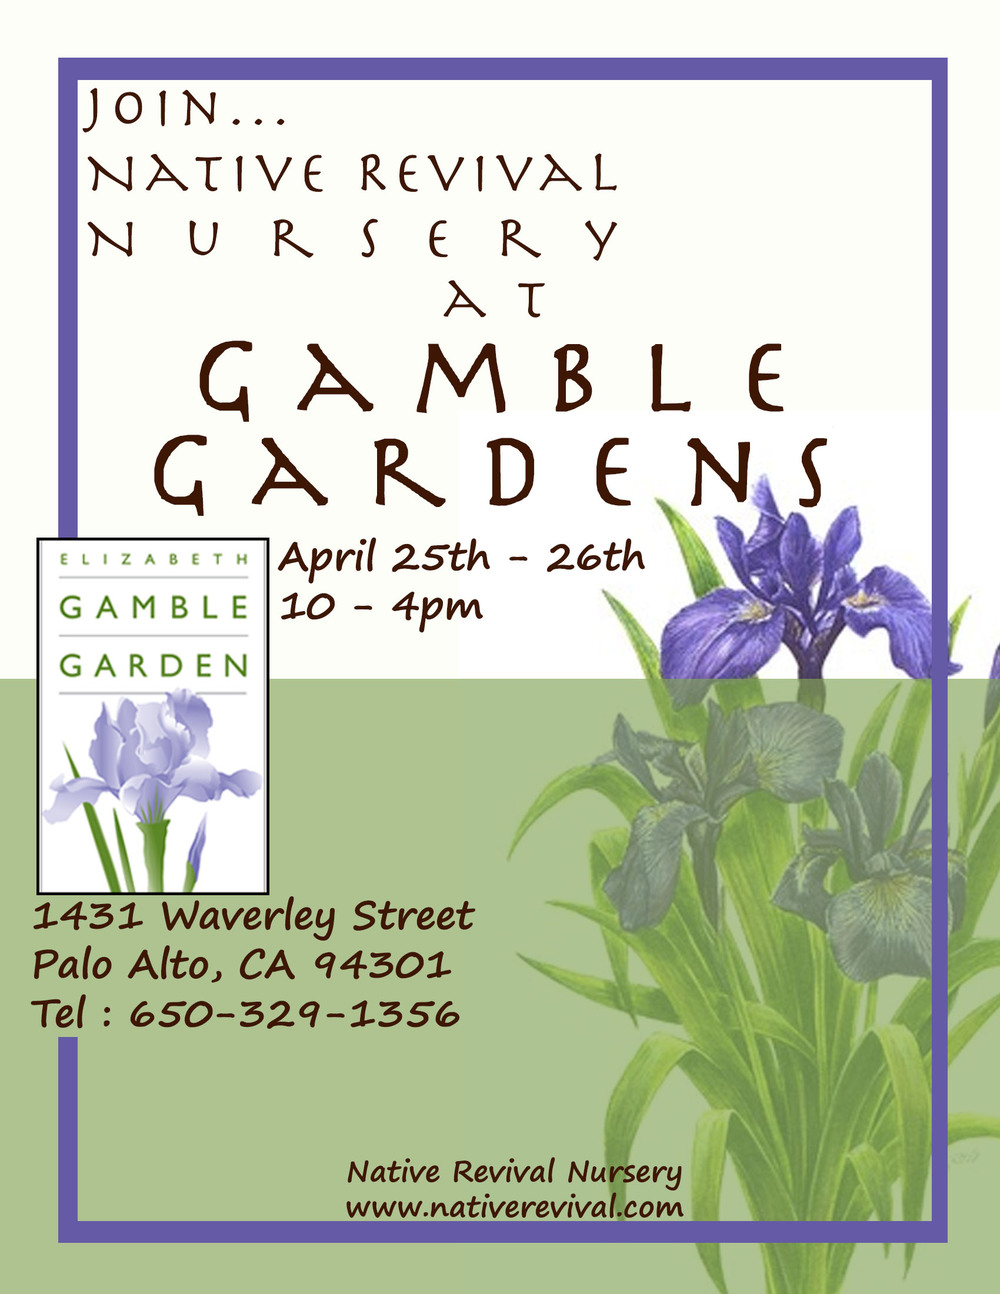 Gamble Gardens Flyer1.jpg